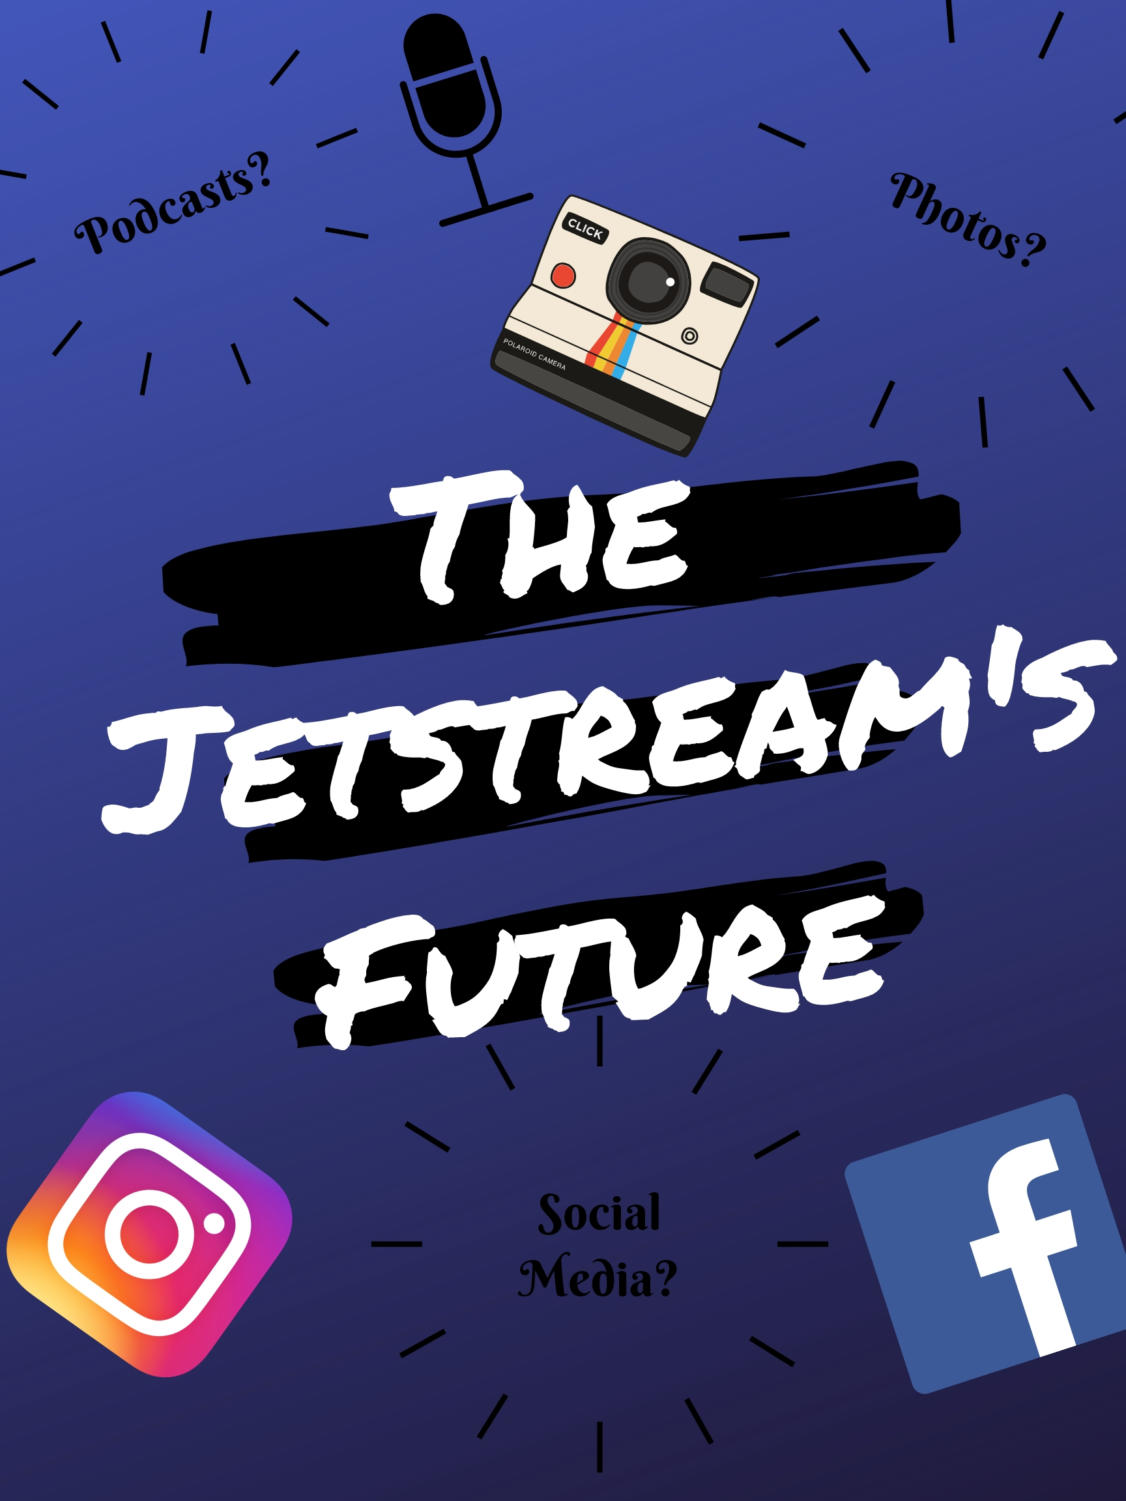 New year, new ideas! Stay tuned to see what the Jetstream Journal becomes.